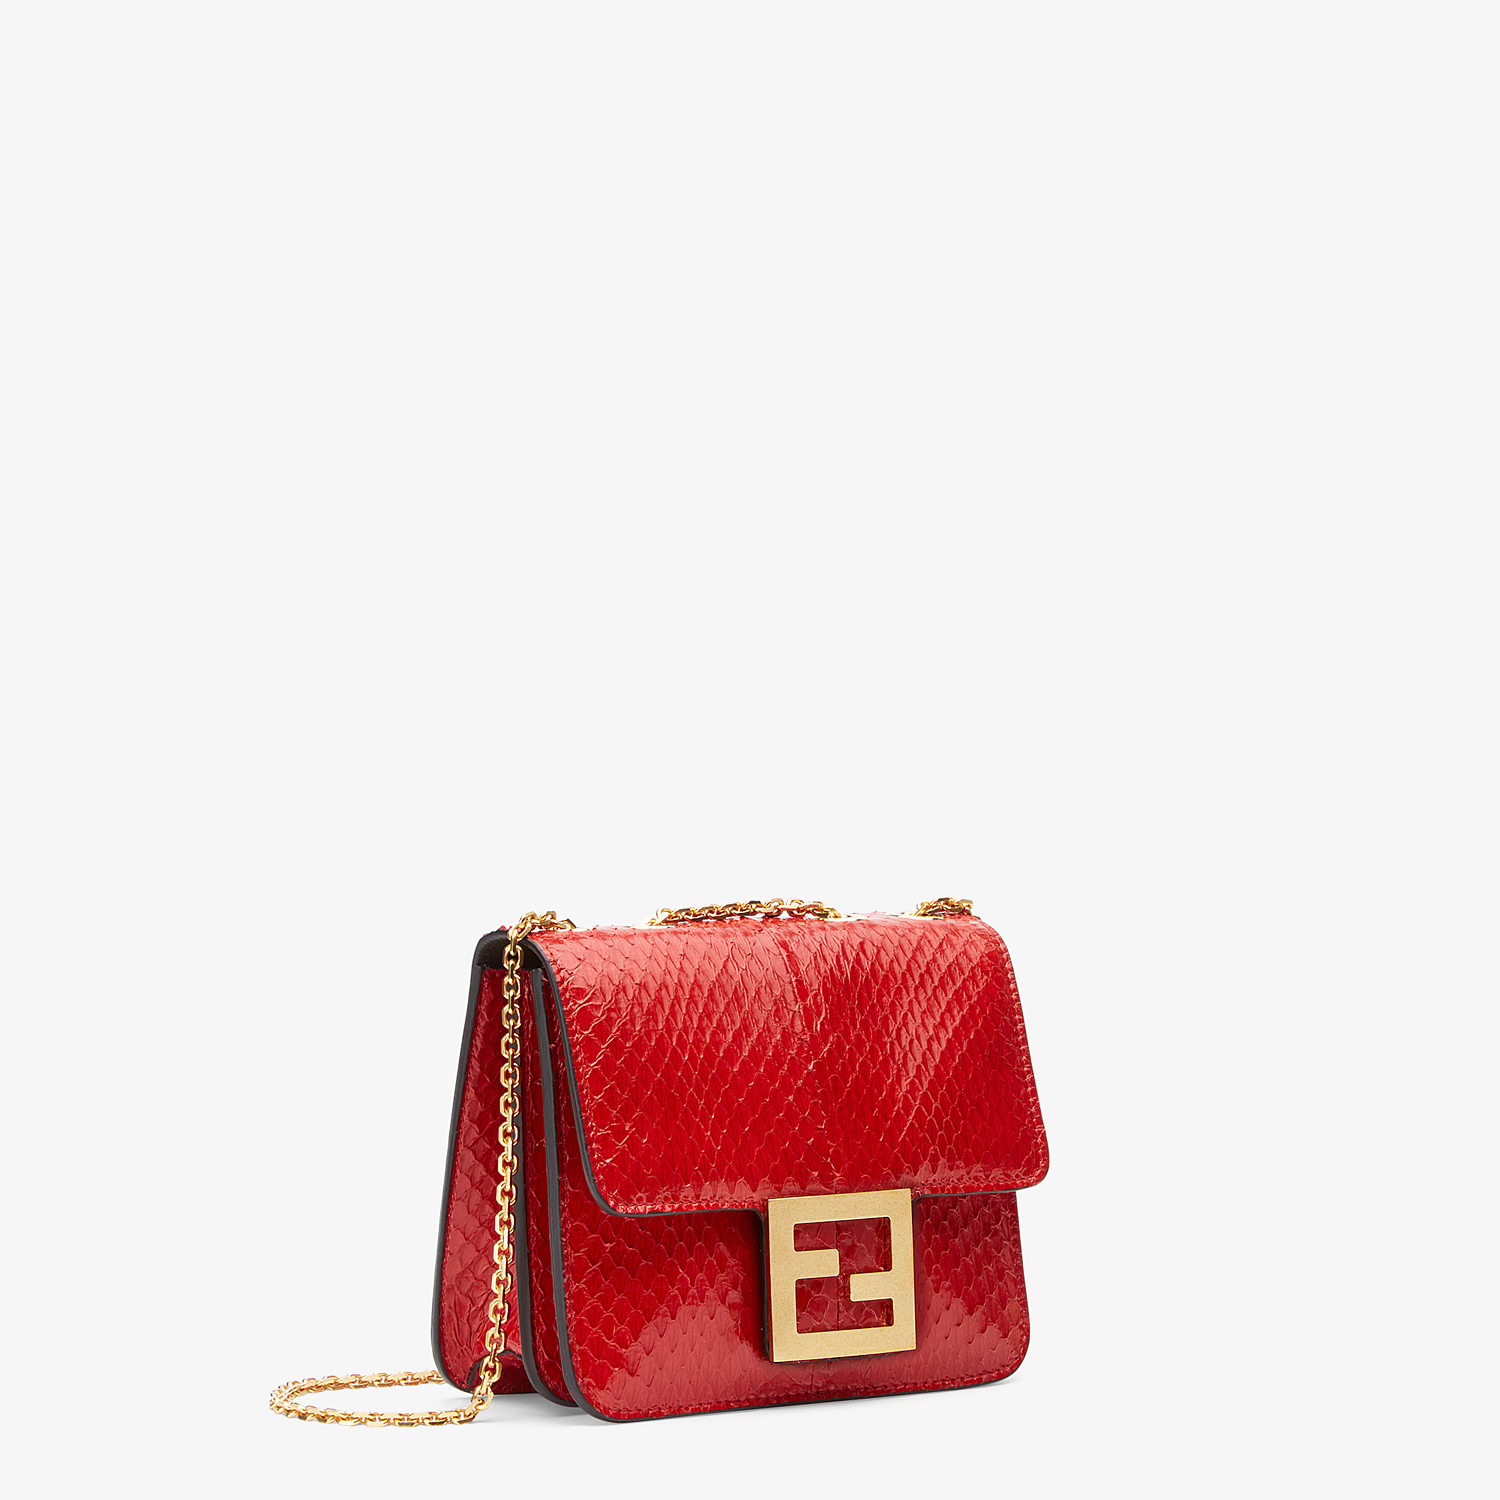 FENDI FENDI FAB - Bag in red elaphe - view 2 detail